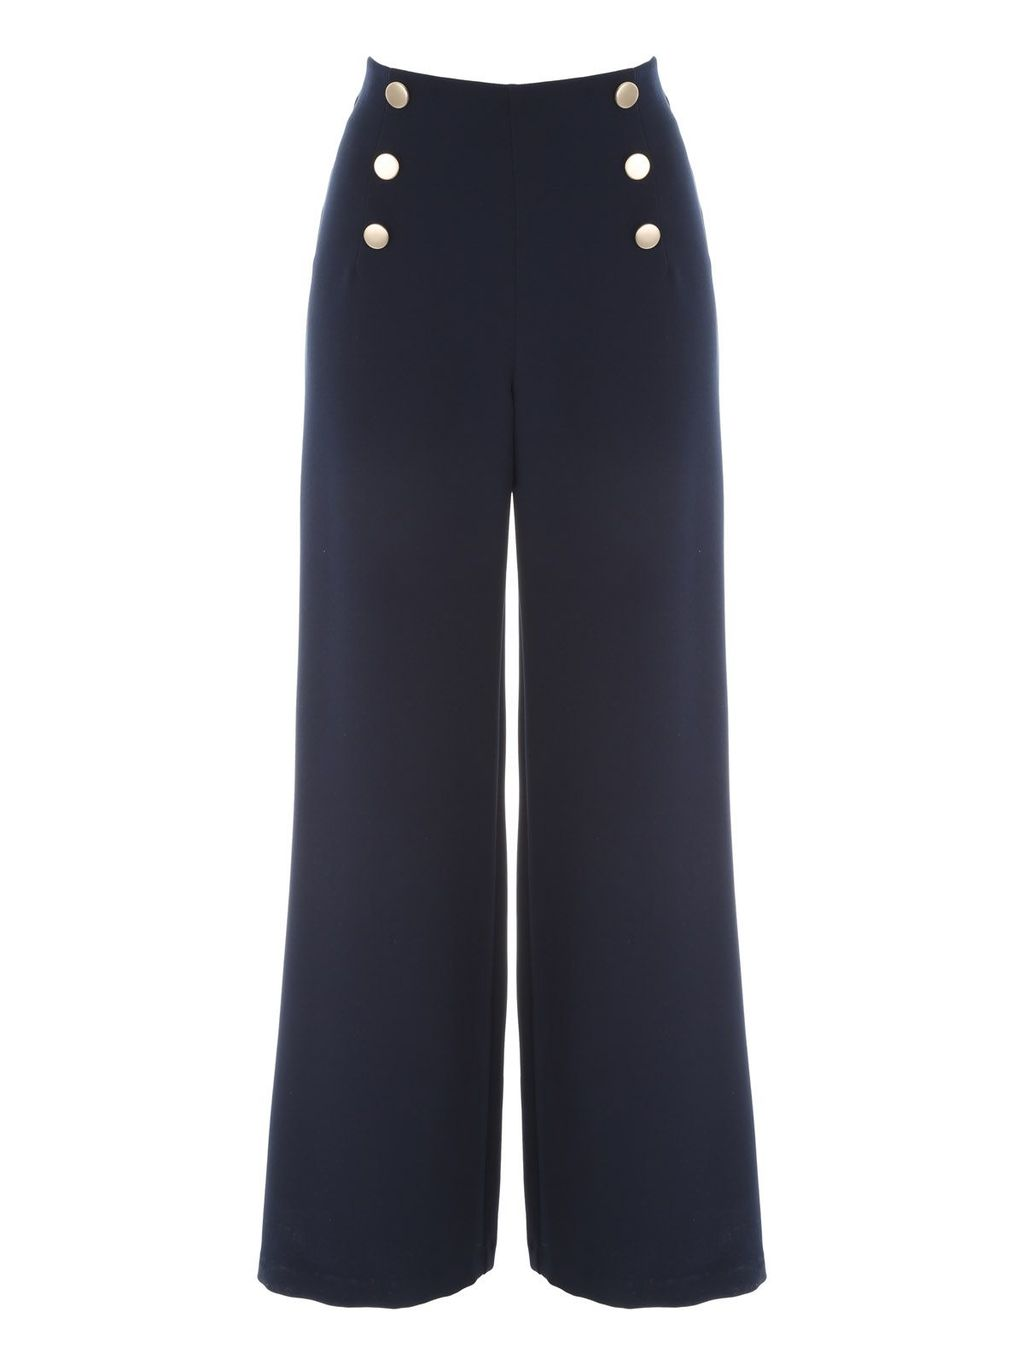 Sailor Button Trouser, Navy - length: standard; pattern: plain; waist: high rise; predominant colour: navy; occasions: work, creative work; fibres: polyester/polyamide - stretch; texture group: crepes; fit: wide leg; pattern type: fabric; style: standard; season: s/s 2016; wardrobe: highlight; embellishment location: waist